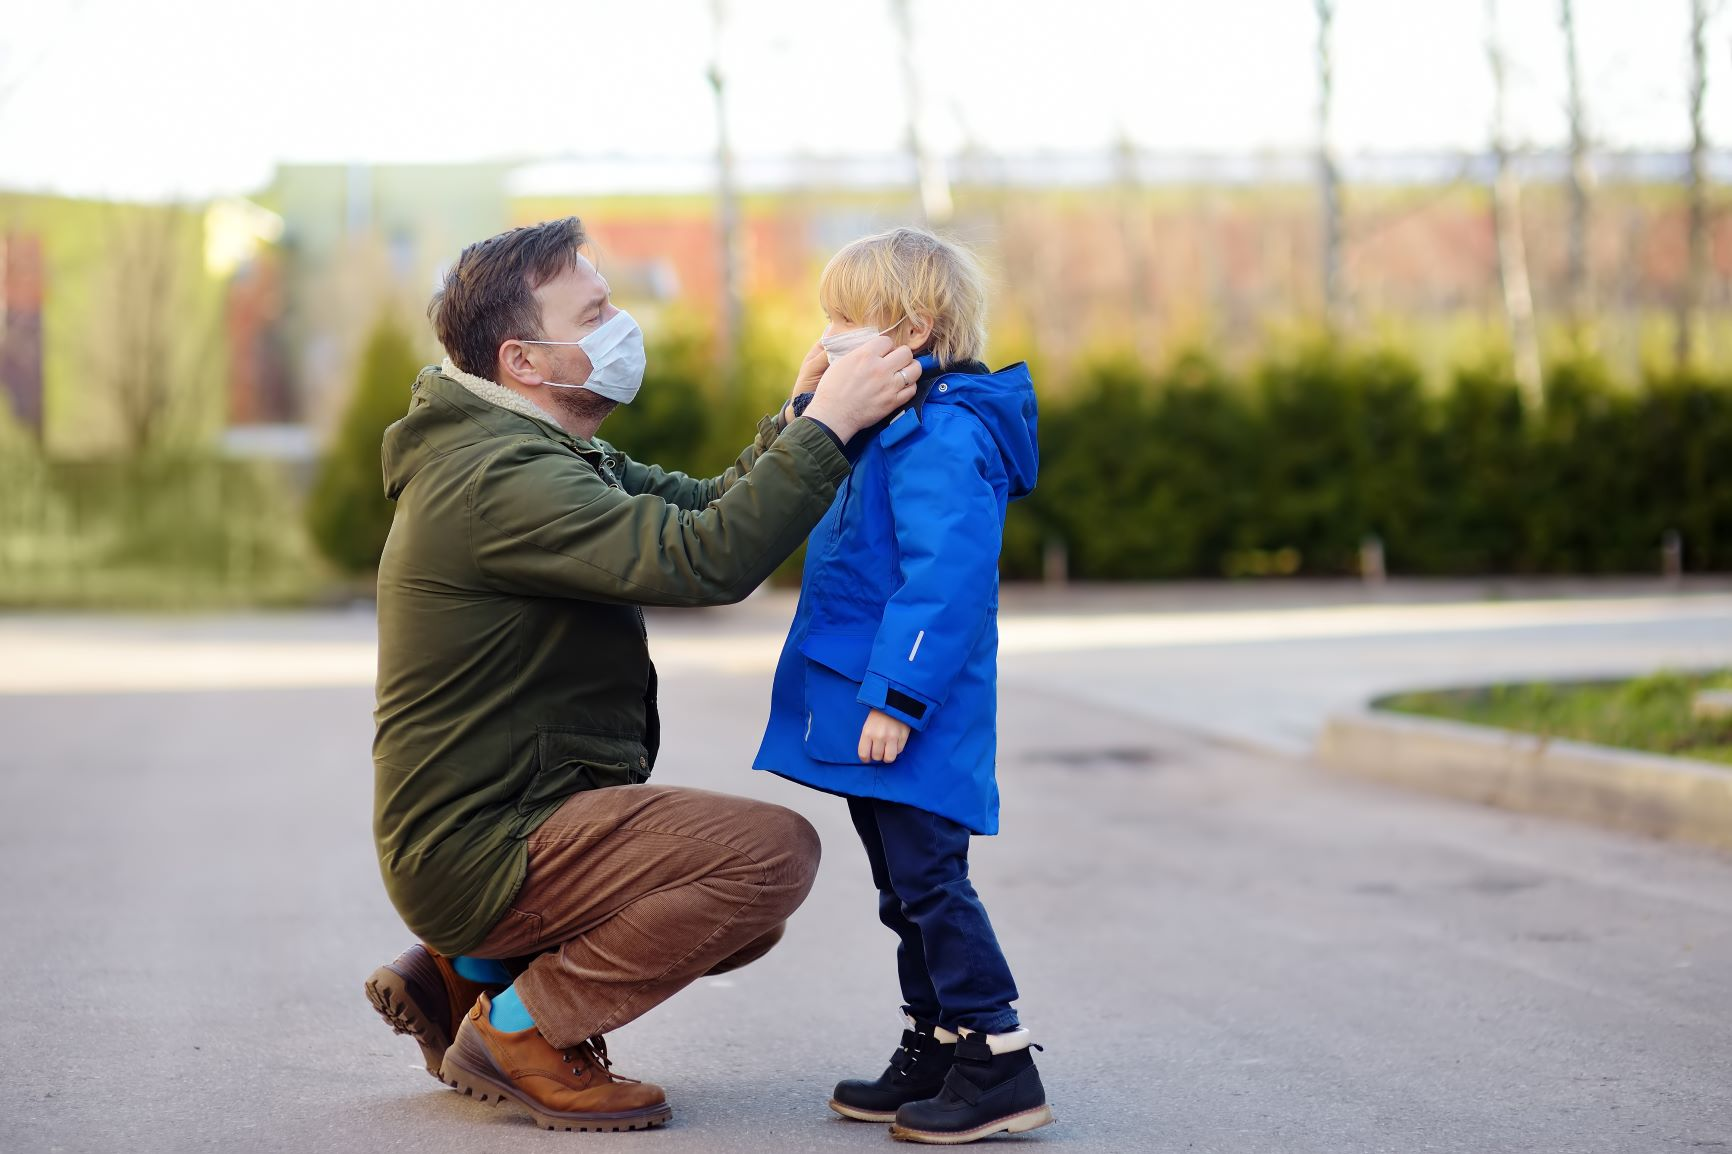 man wearing a jacket and a medical mask adjusting his son's medical mask outside